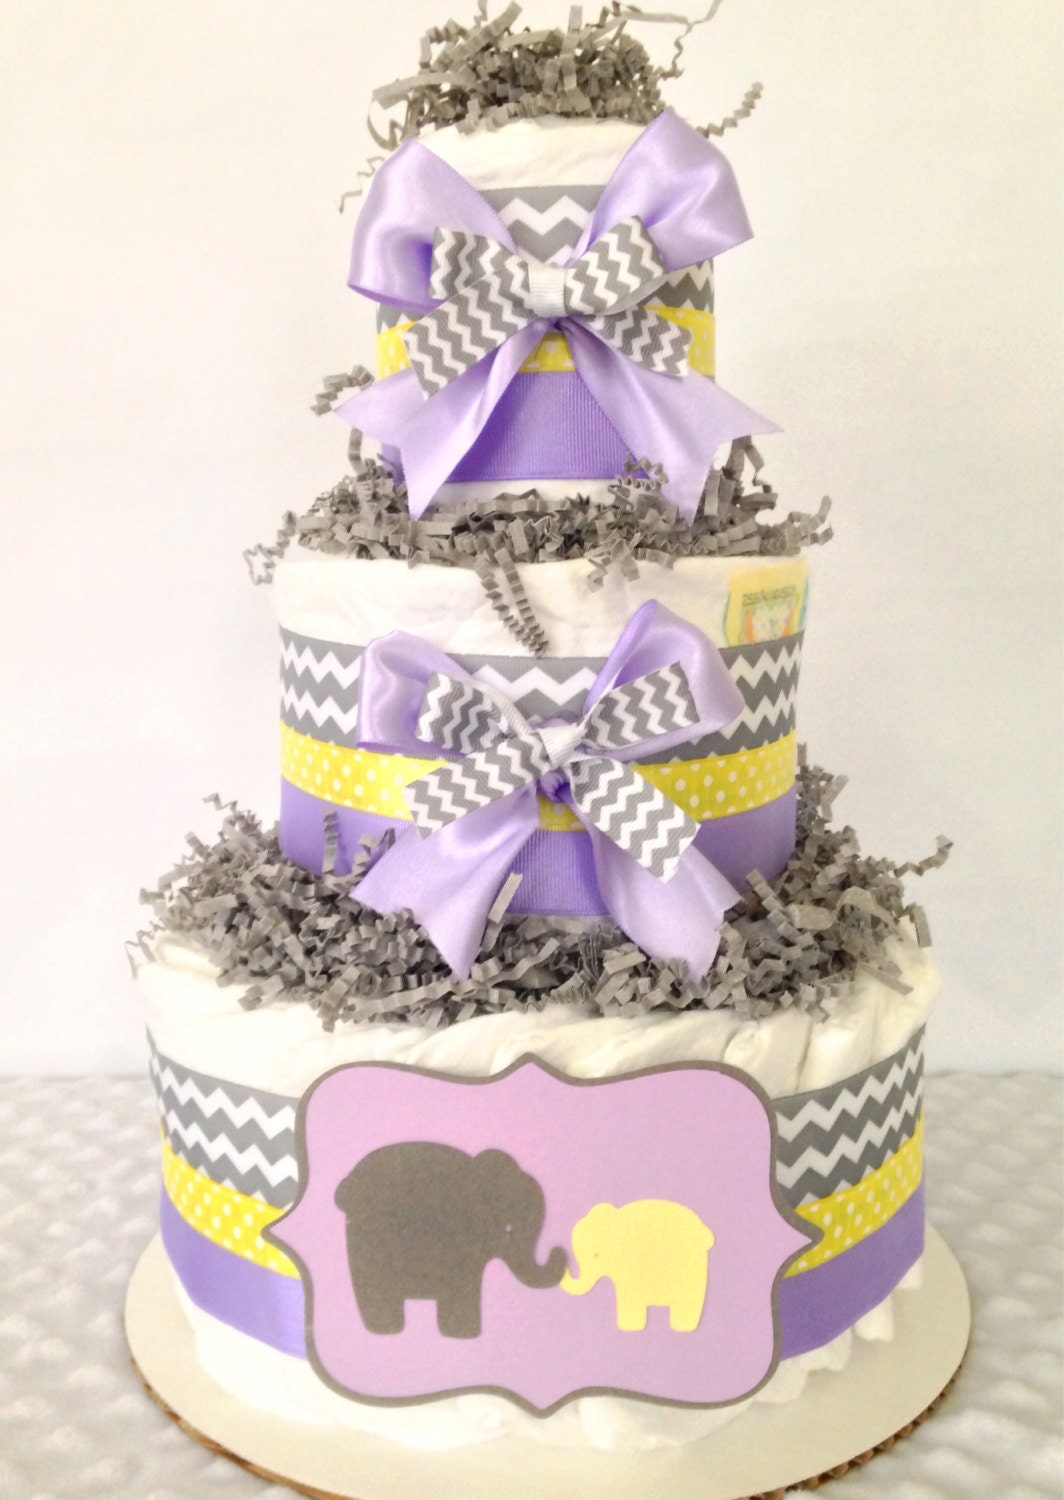 Chevron Elephant Diaper Cake In Lavender, Gray And Yellow, Girl Baby Shower  Centerpiece